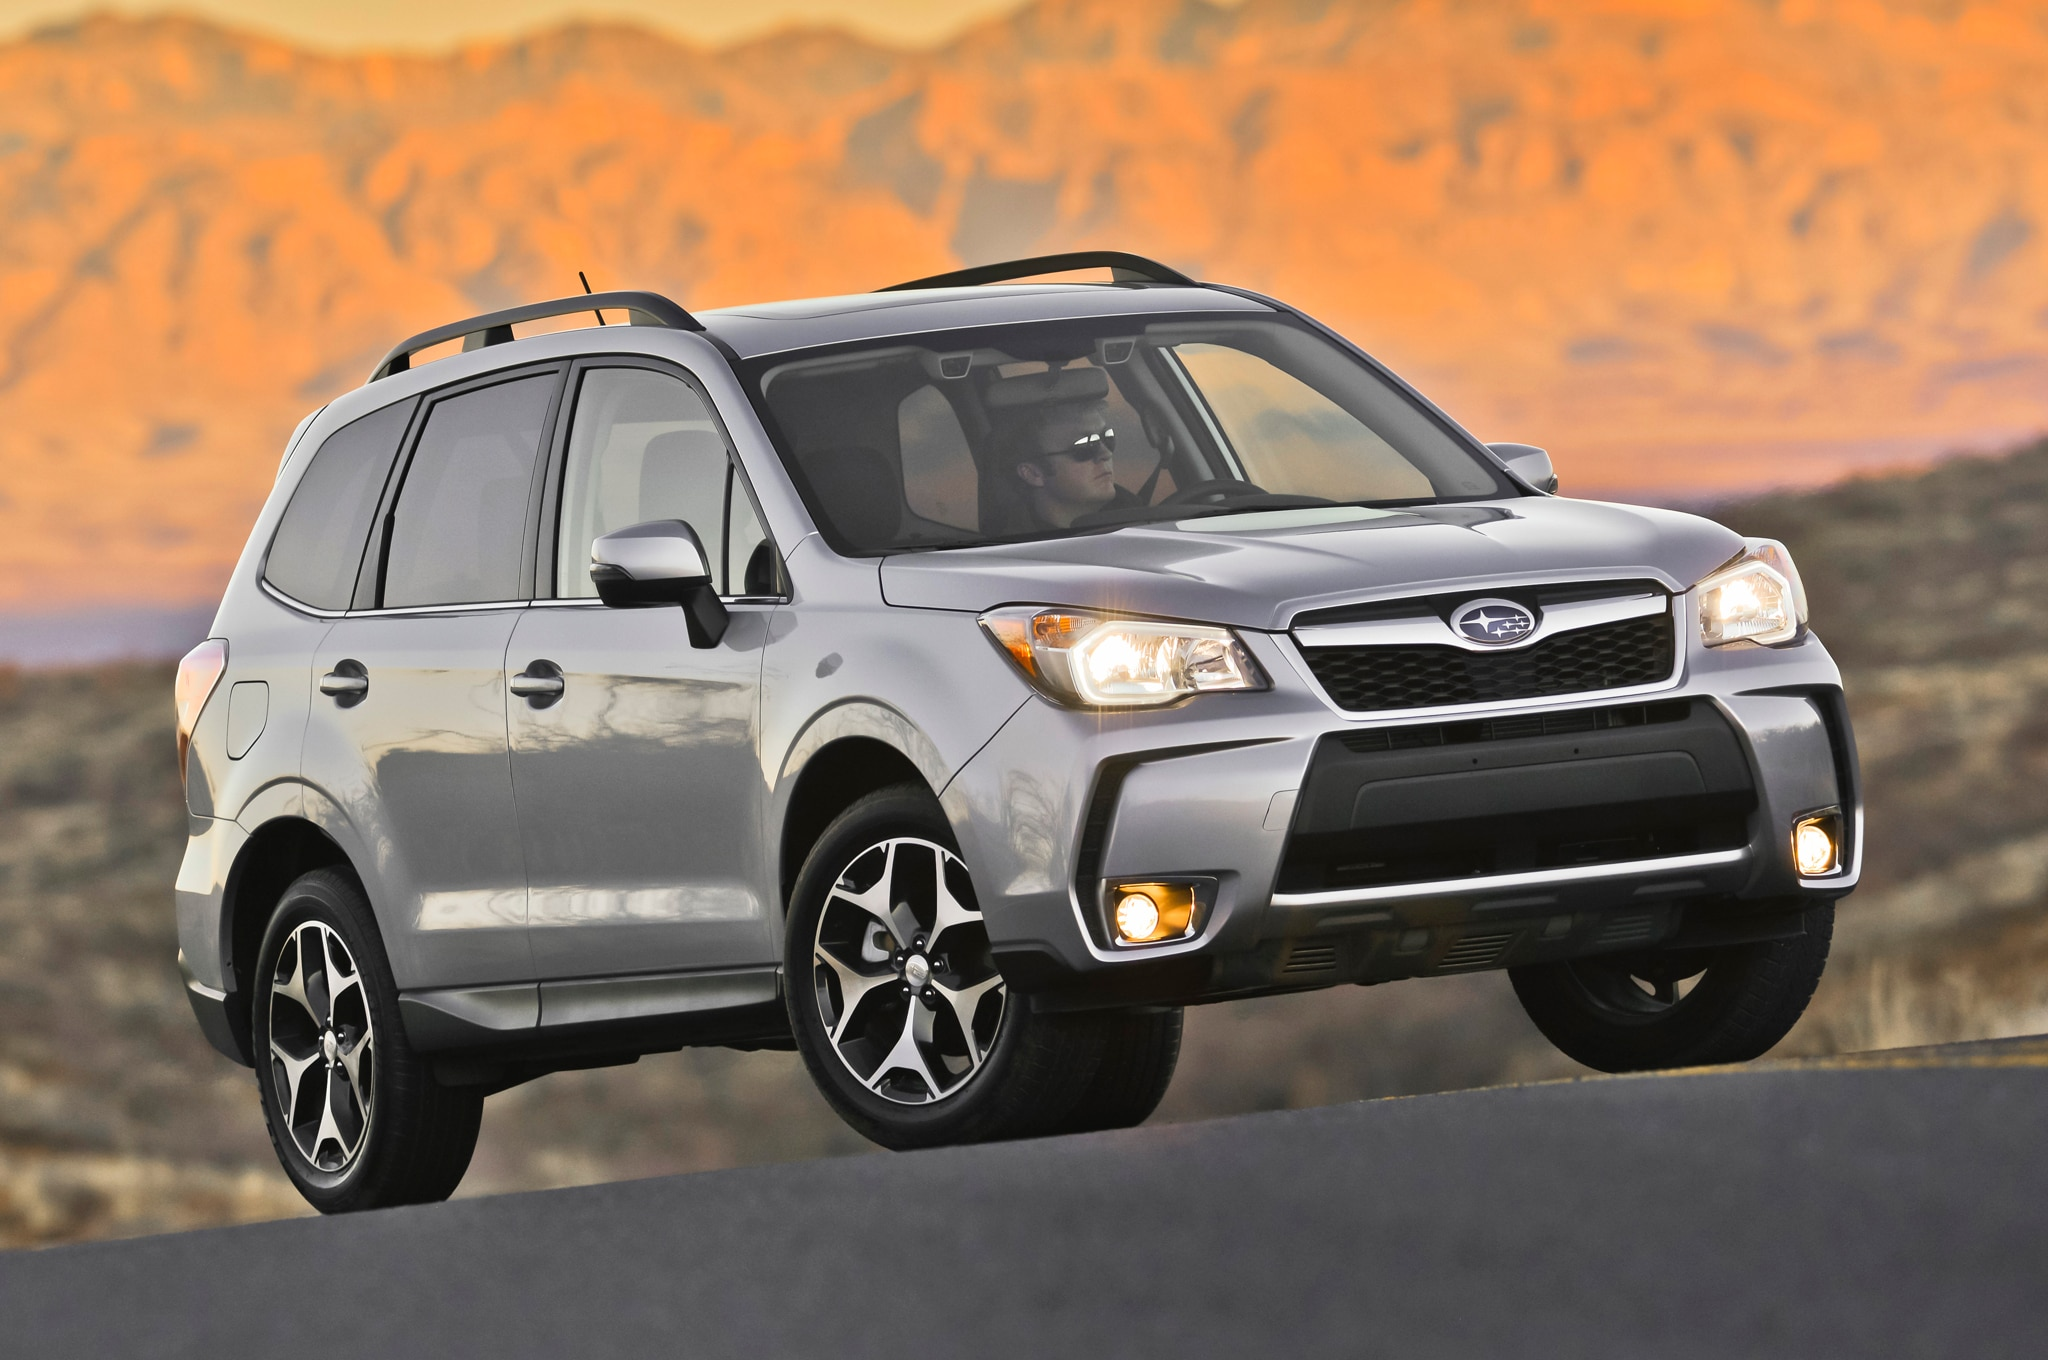 2014 Subaru Forester XT Passengers Side Front Three Quarters View 251